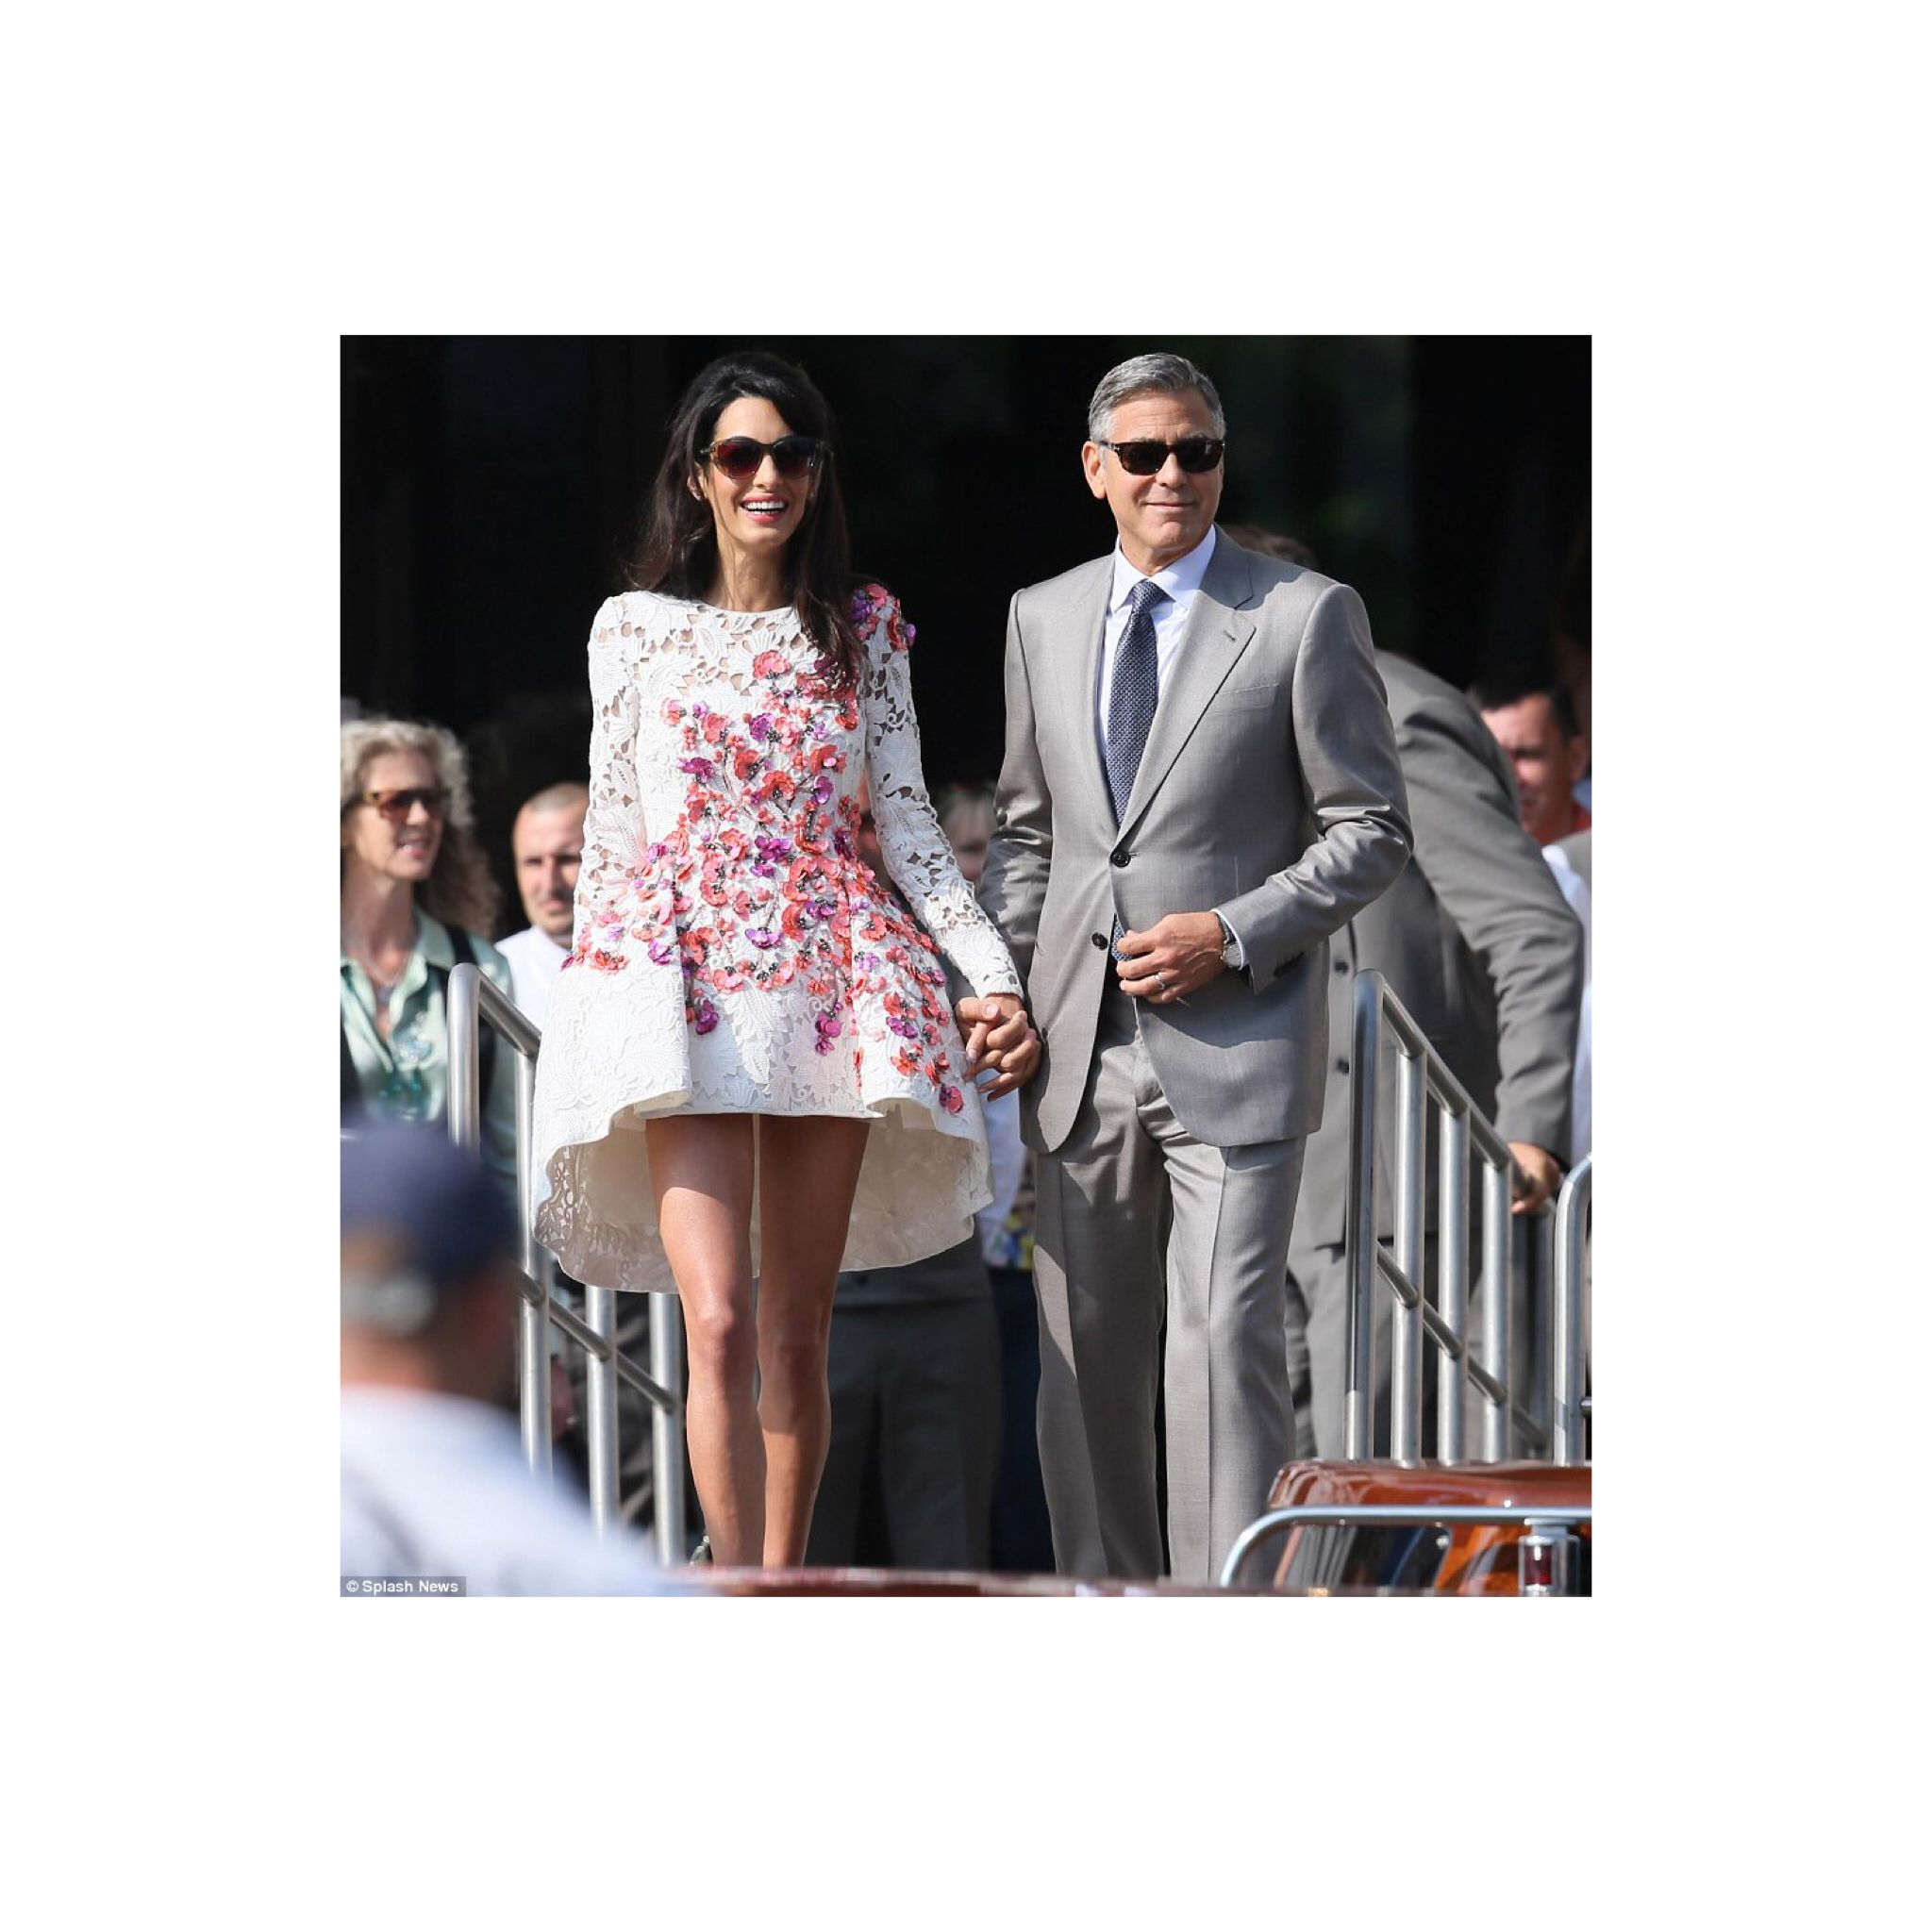 Congratulation To The Newly Weds George Clooney And Amal